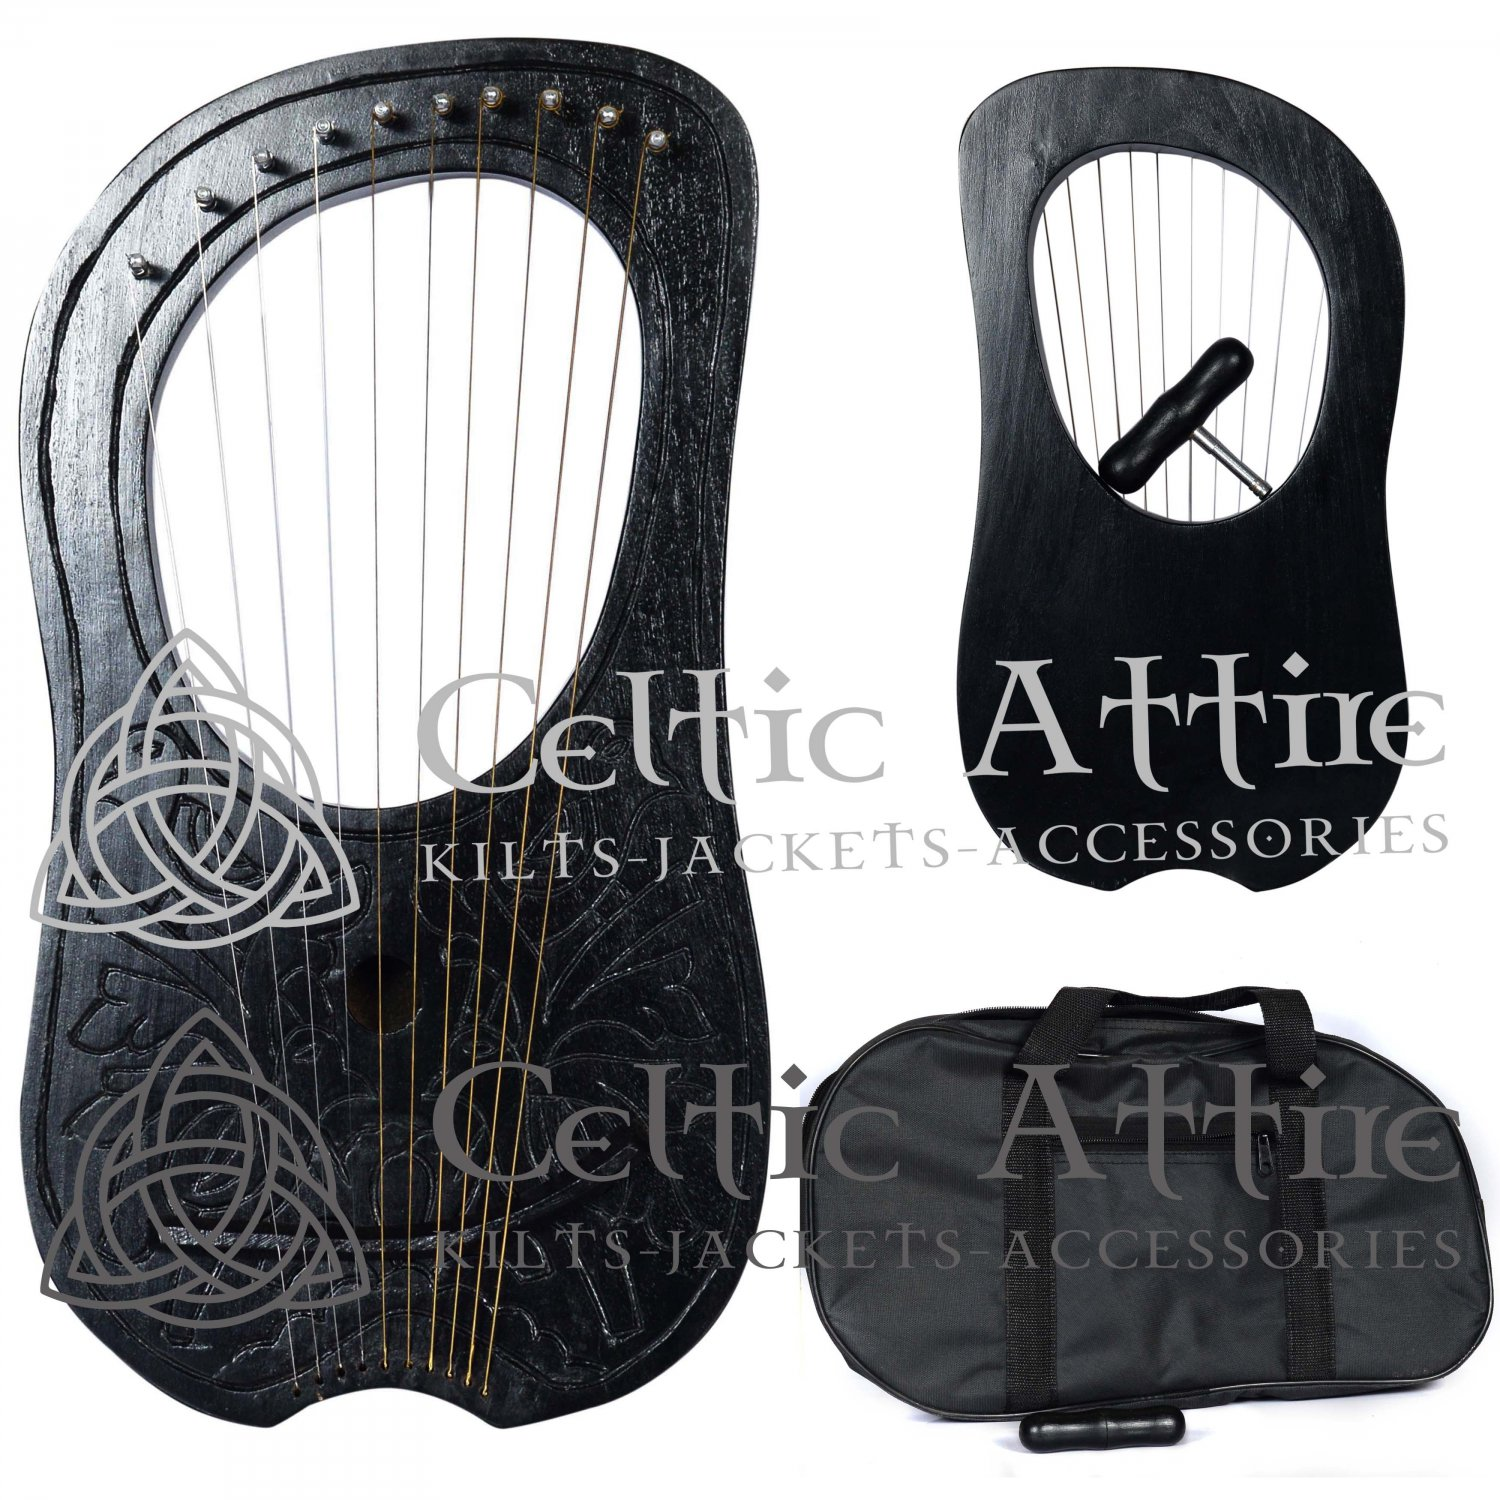 LYRE HARP Four BIRD 10 Metal Strings Rosewood Hand Engraved Black Bag and Key